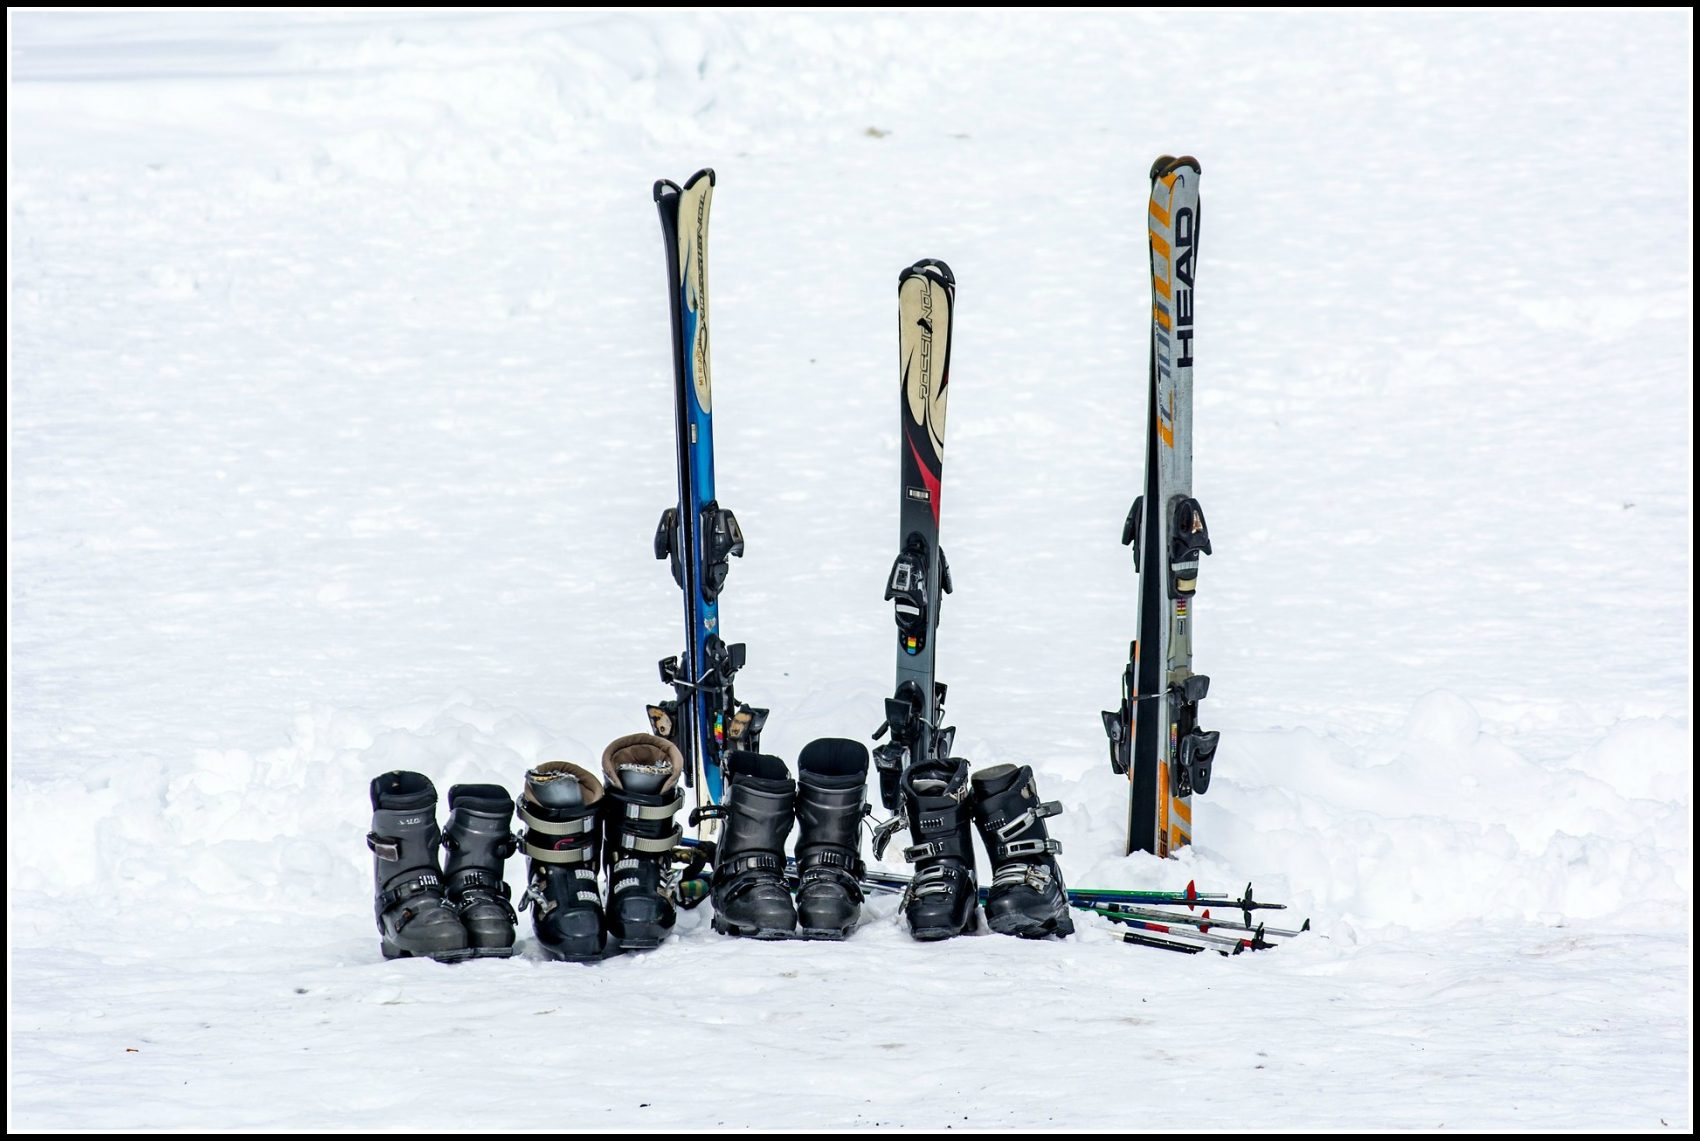 Top Tips for Visiting The Snow | ski equipment hire Australia